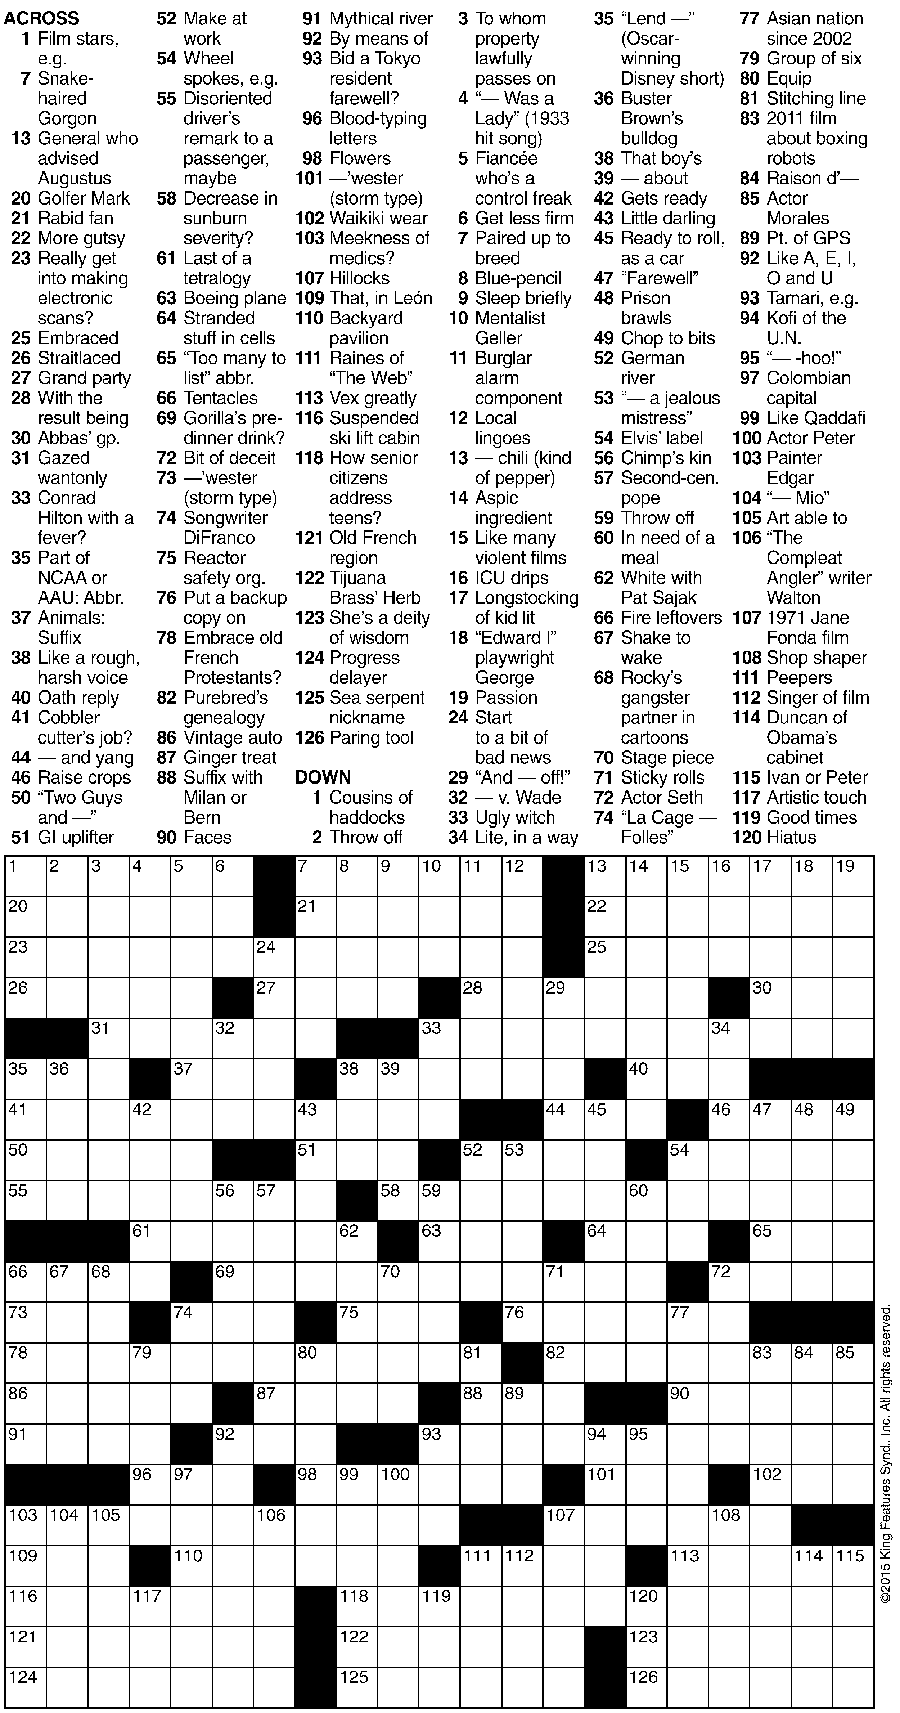 crossword_puzzle1-1-f73e5f7932b49d7d.png